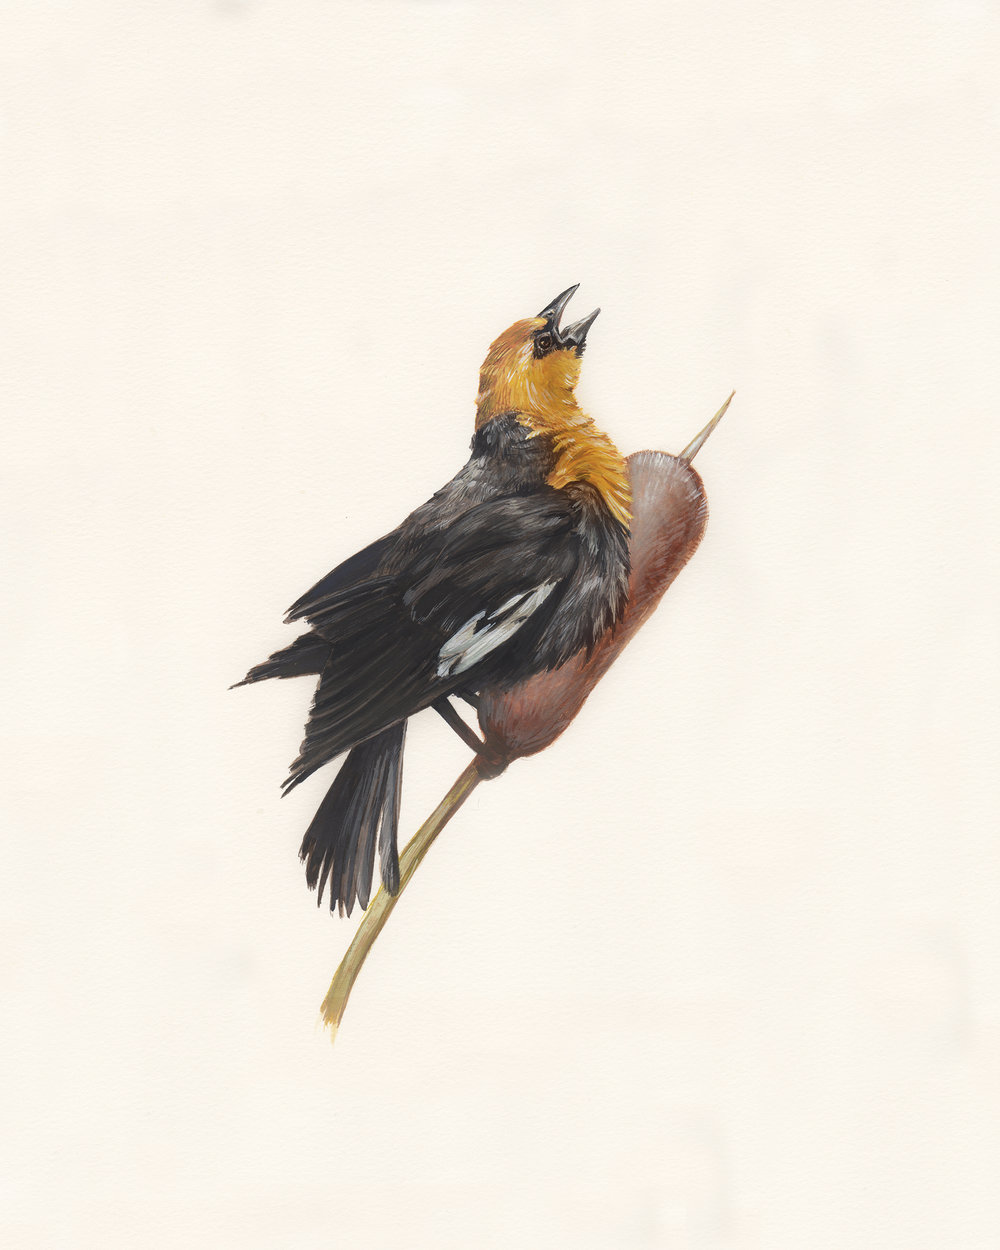 Yellow-headed blackbird. Guache on paper.